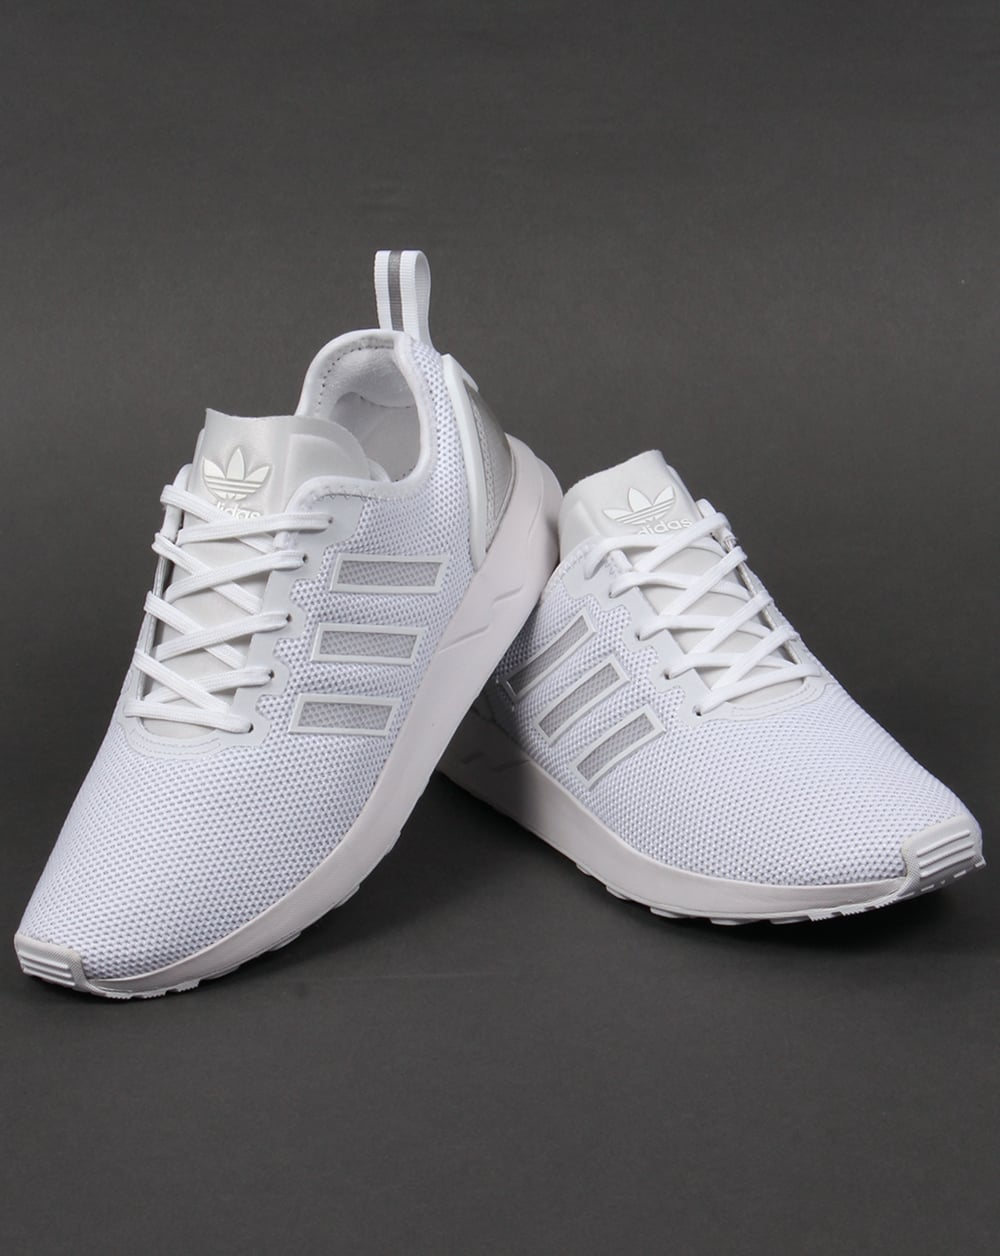 separation shoes 52f0f b2e0c Adidas Zx Flux Adv White wallbank-lfc.co.uk